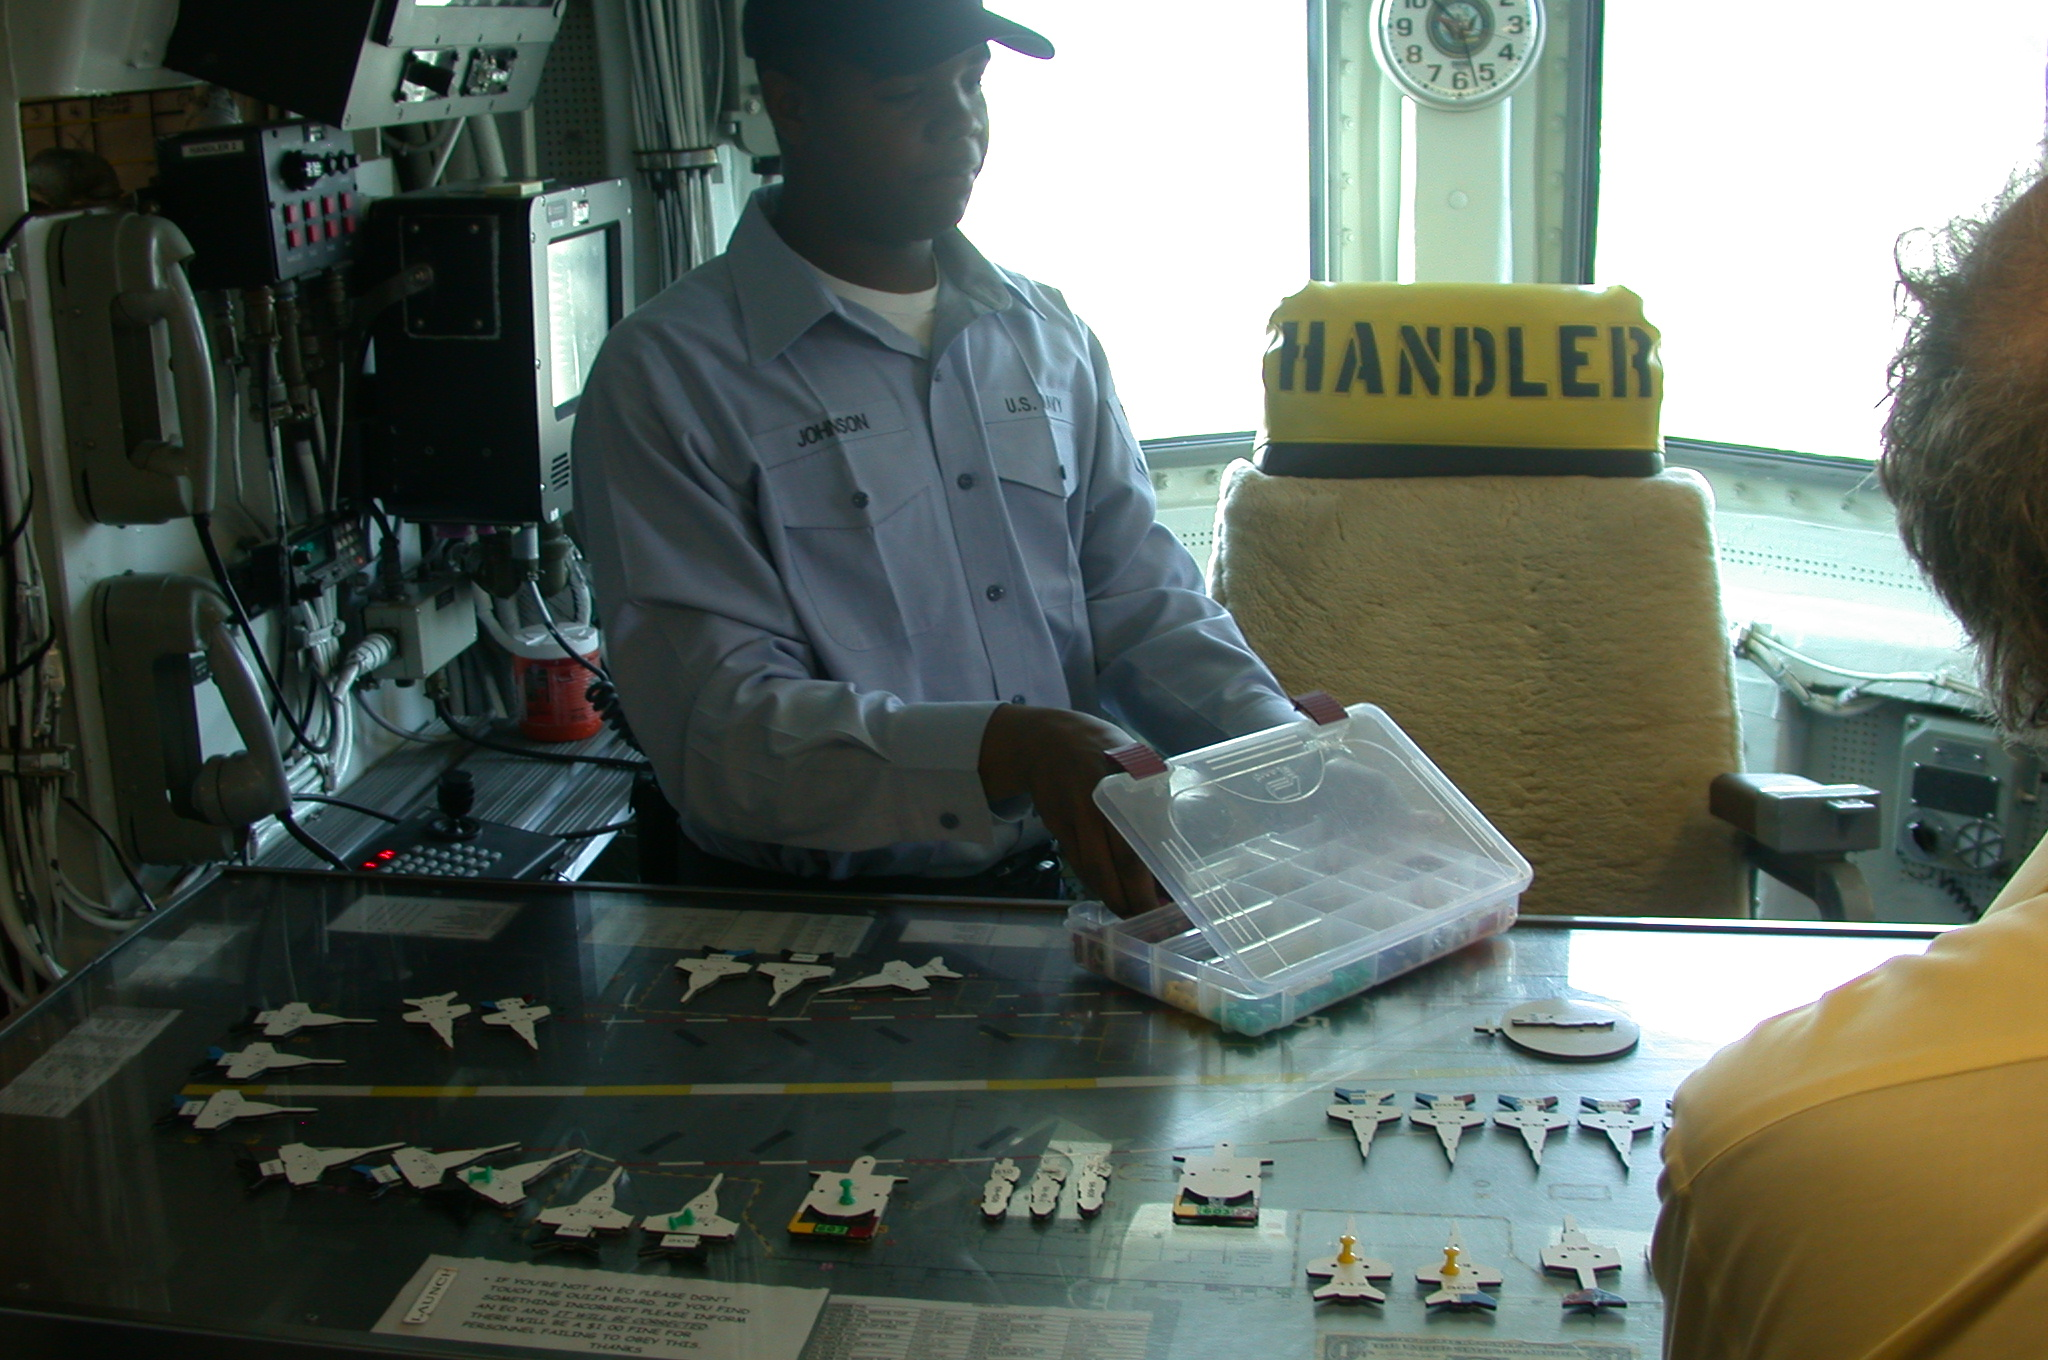 DSCN0085.jpg - One of the ship's crew tells us how they manage the aircraft on board ship.